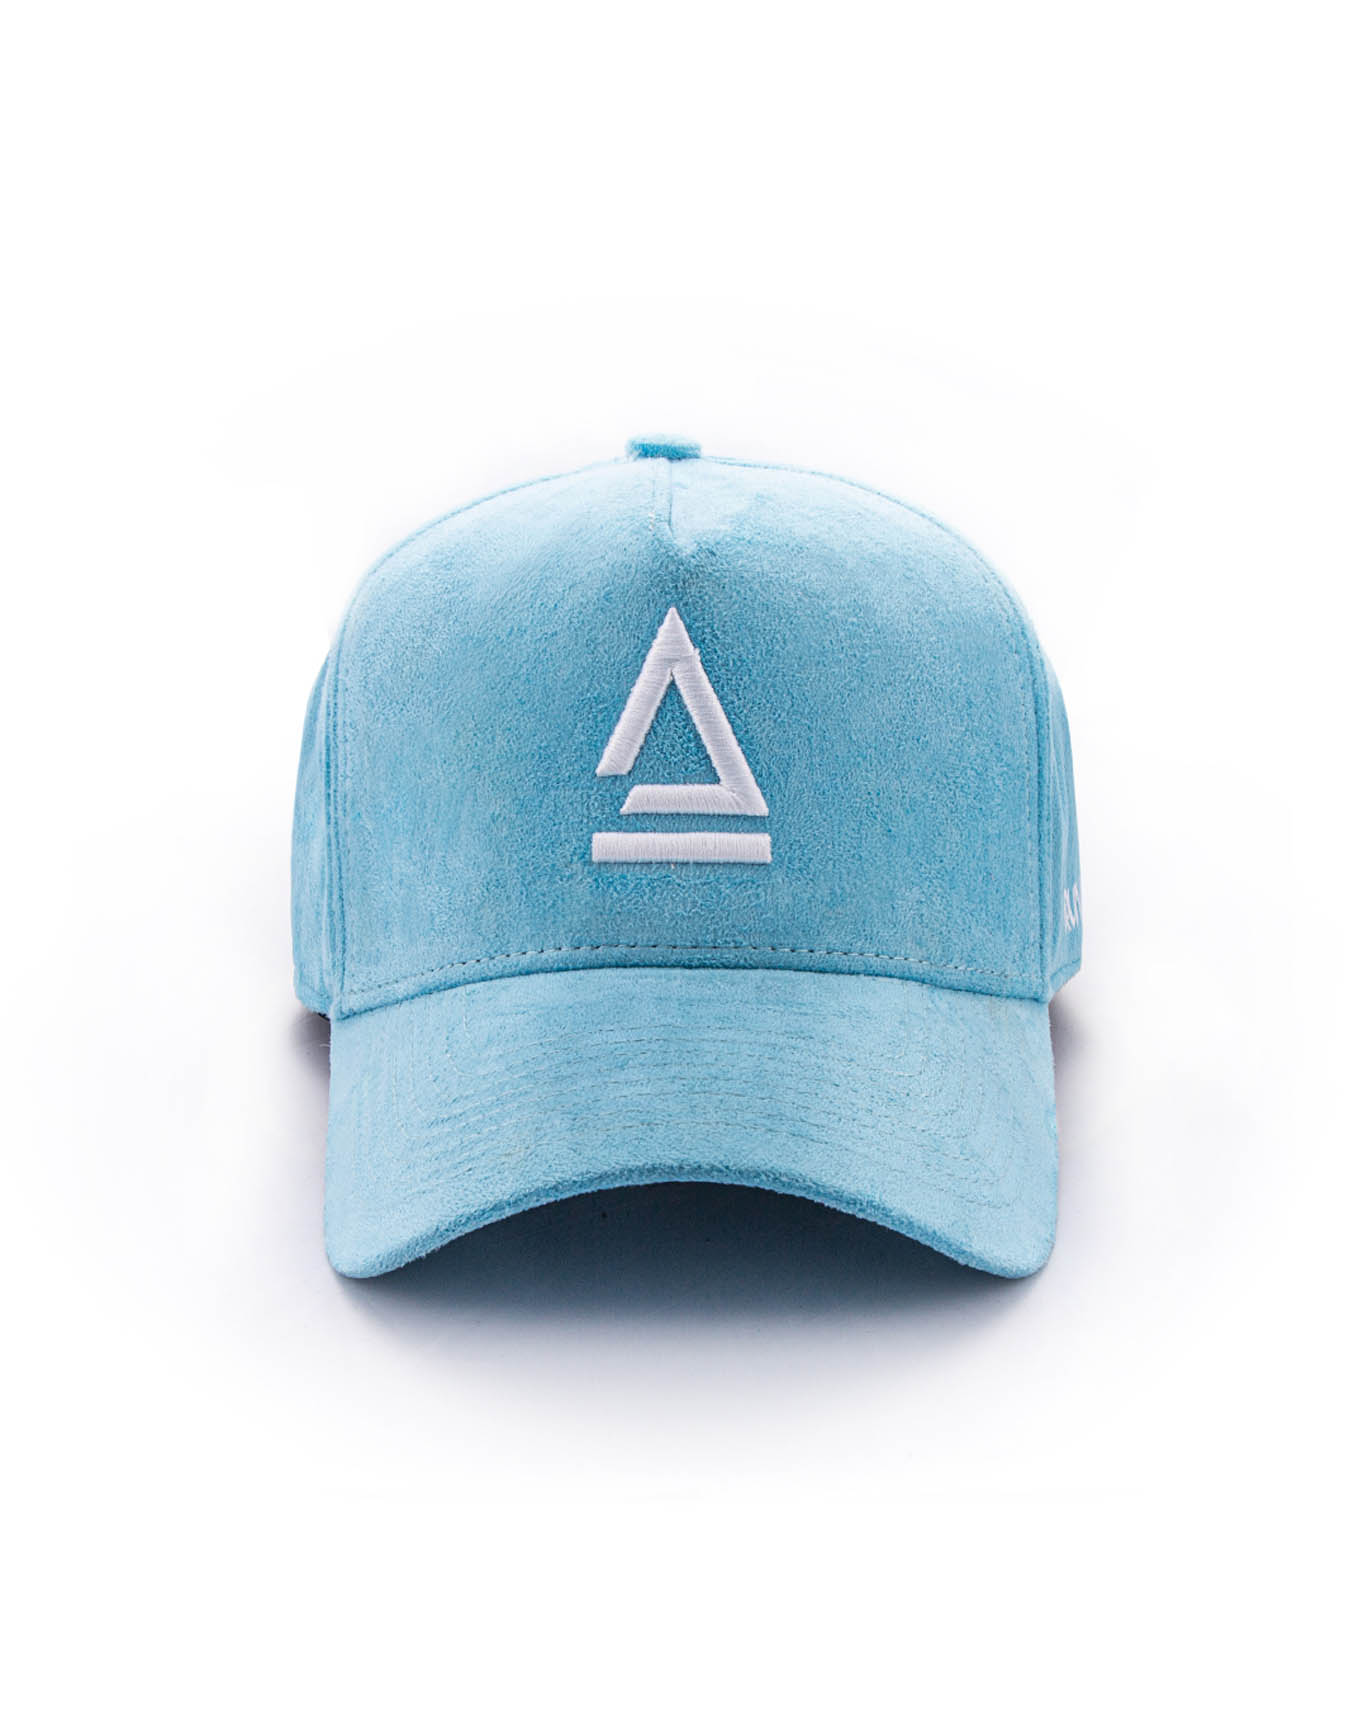 BABY BLUE SUEDE - A FRAME HAT